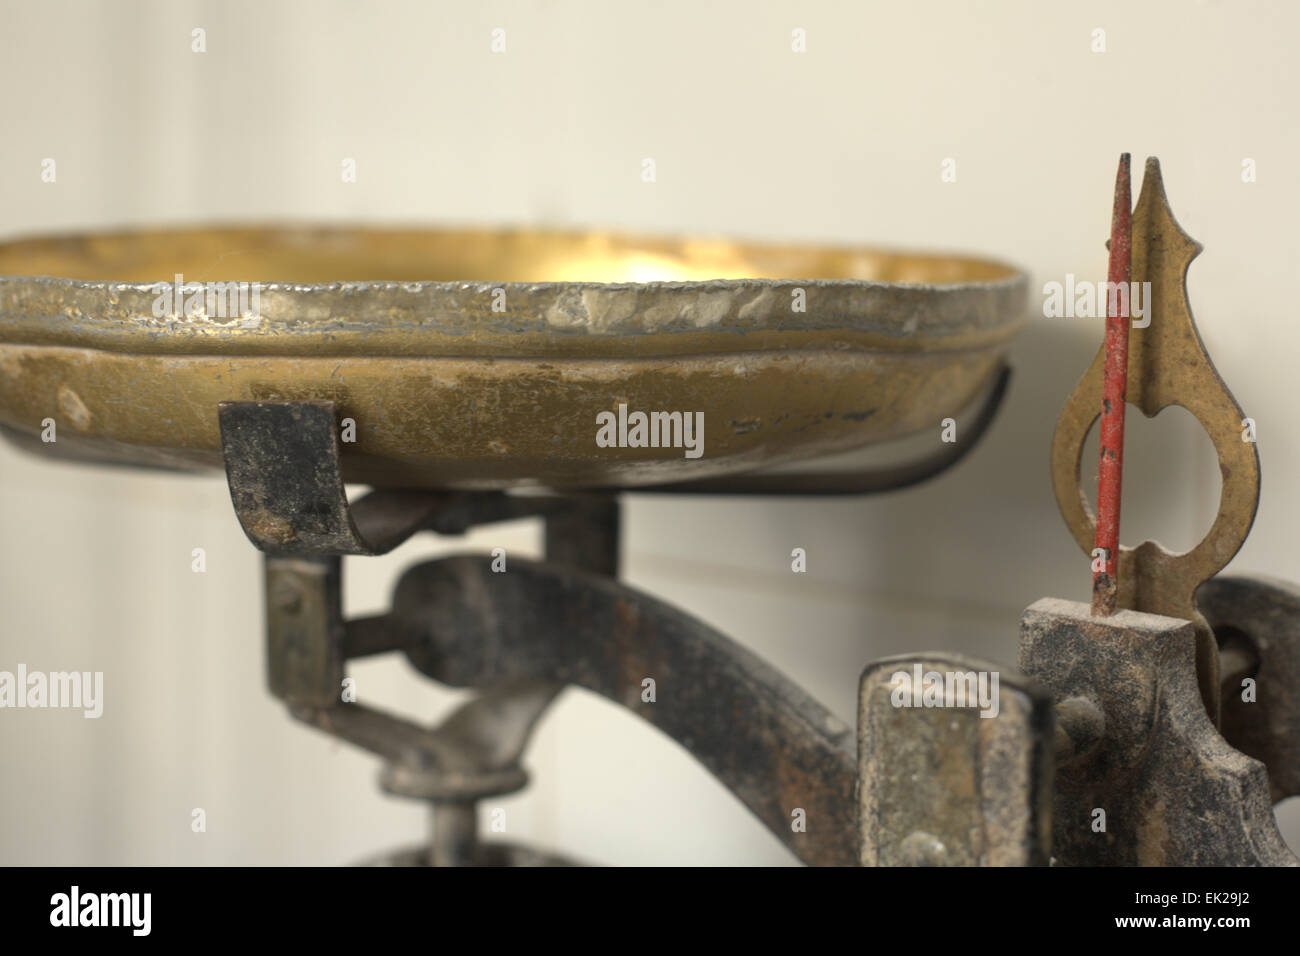 Old weighing scale for weighing dough in a bakery - Stock Image